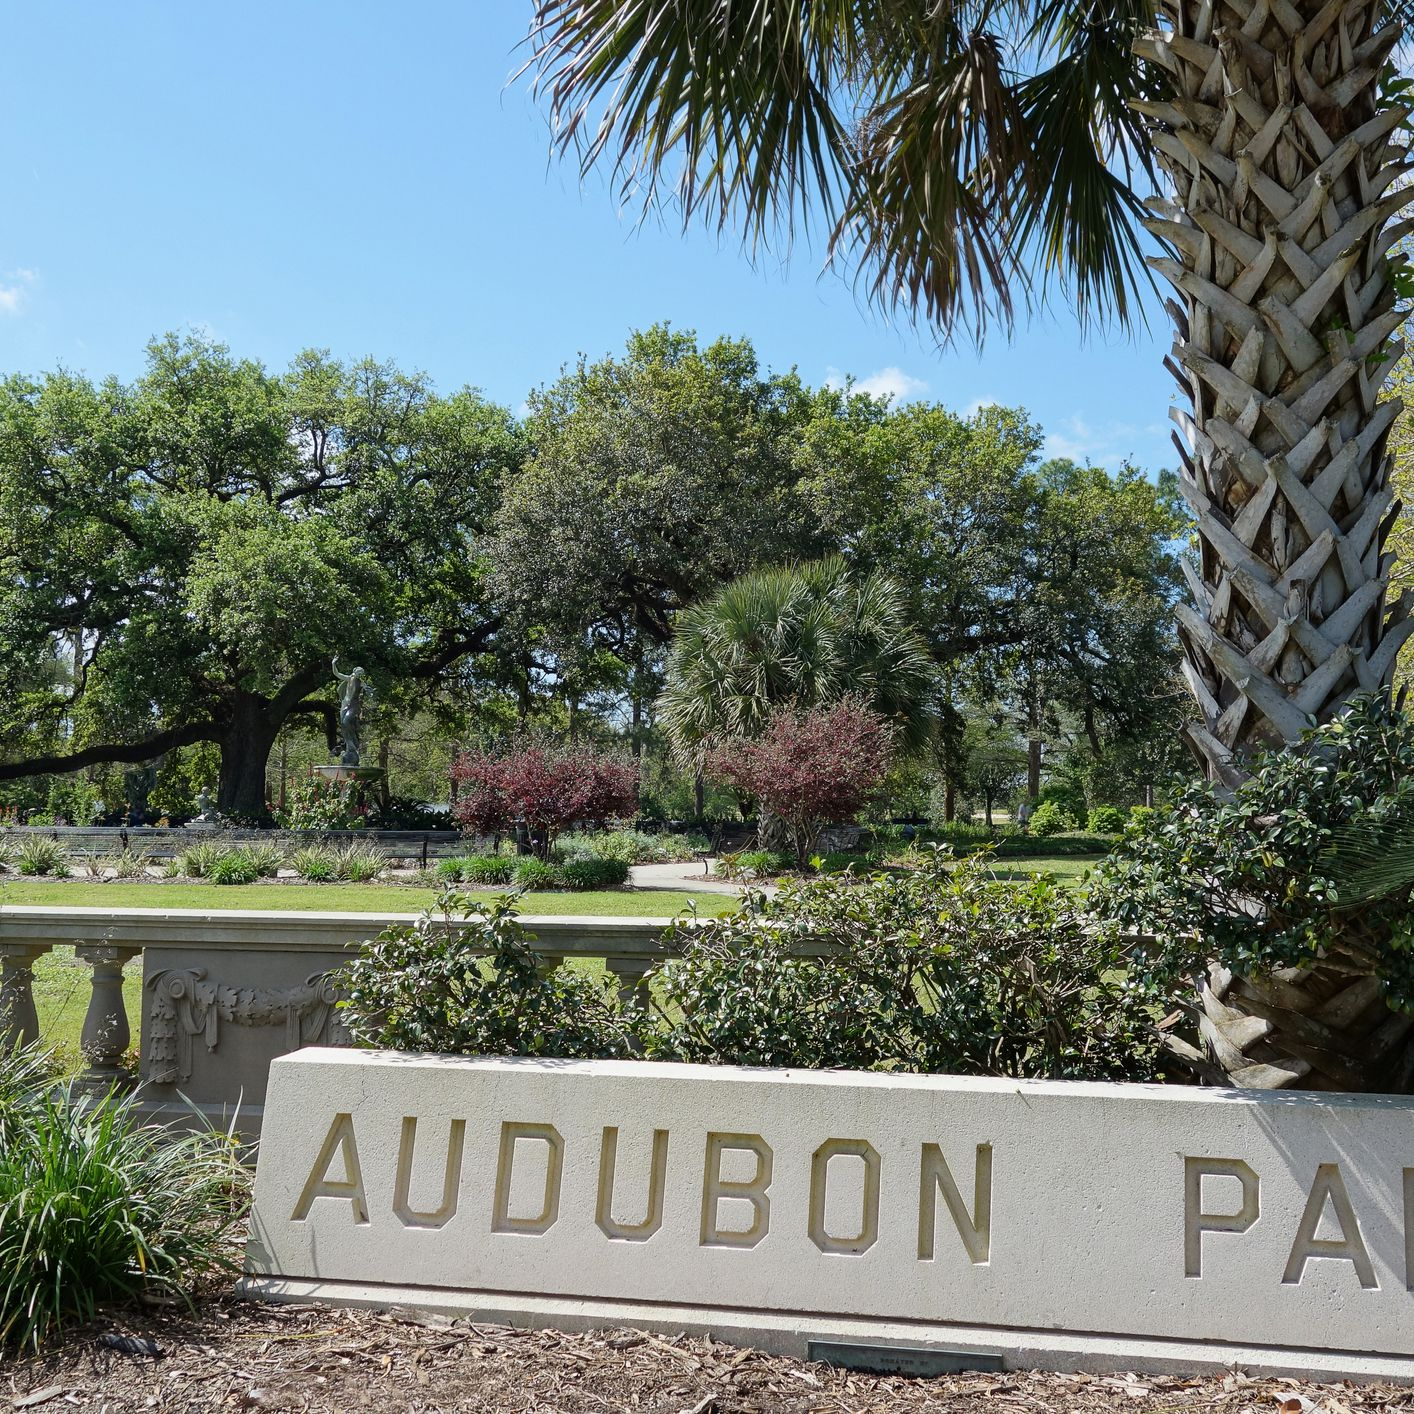 Audubon Park in New Orleans: The Complete Guide